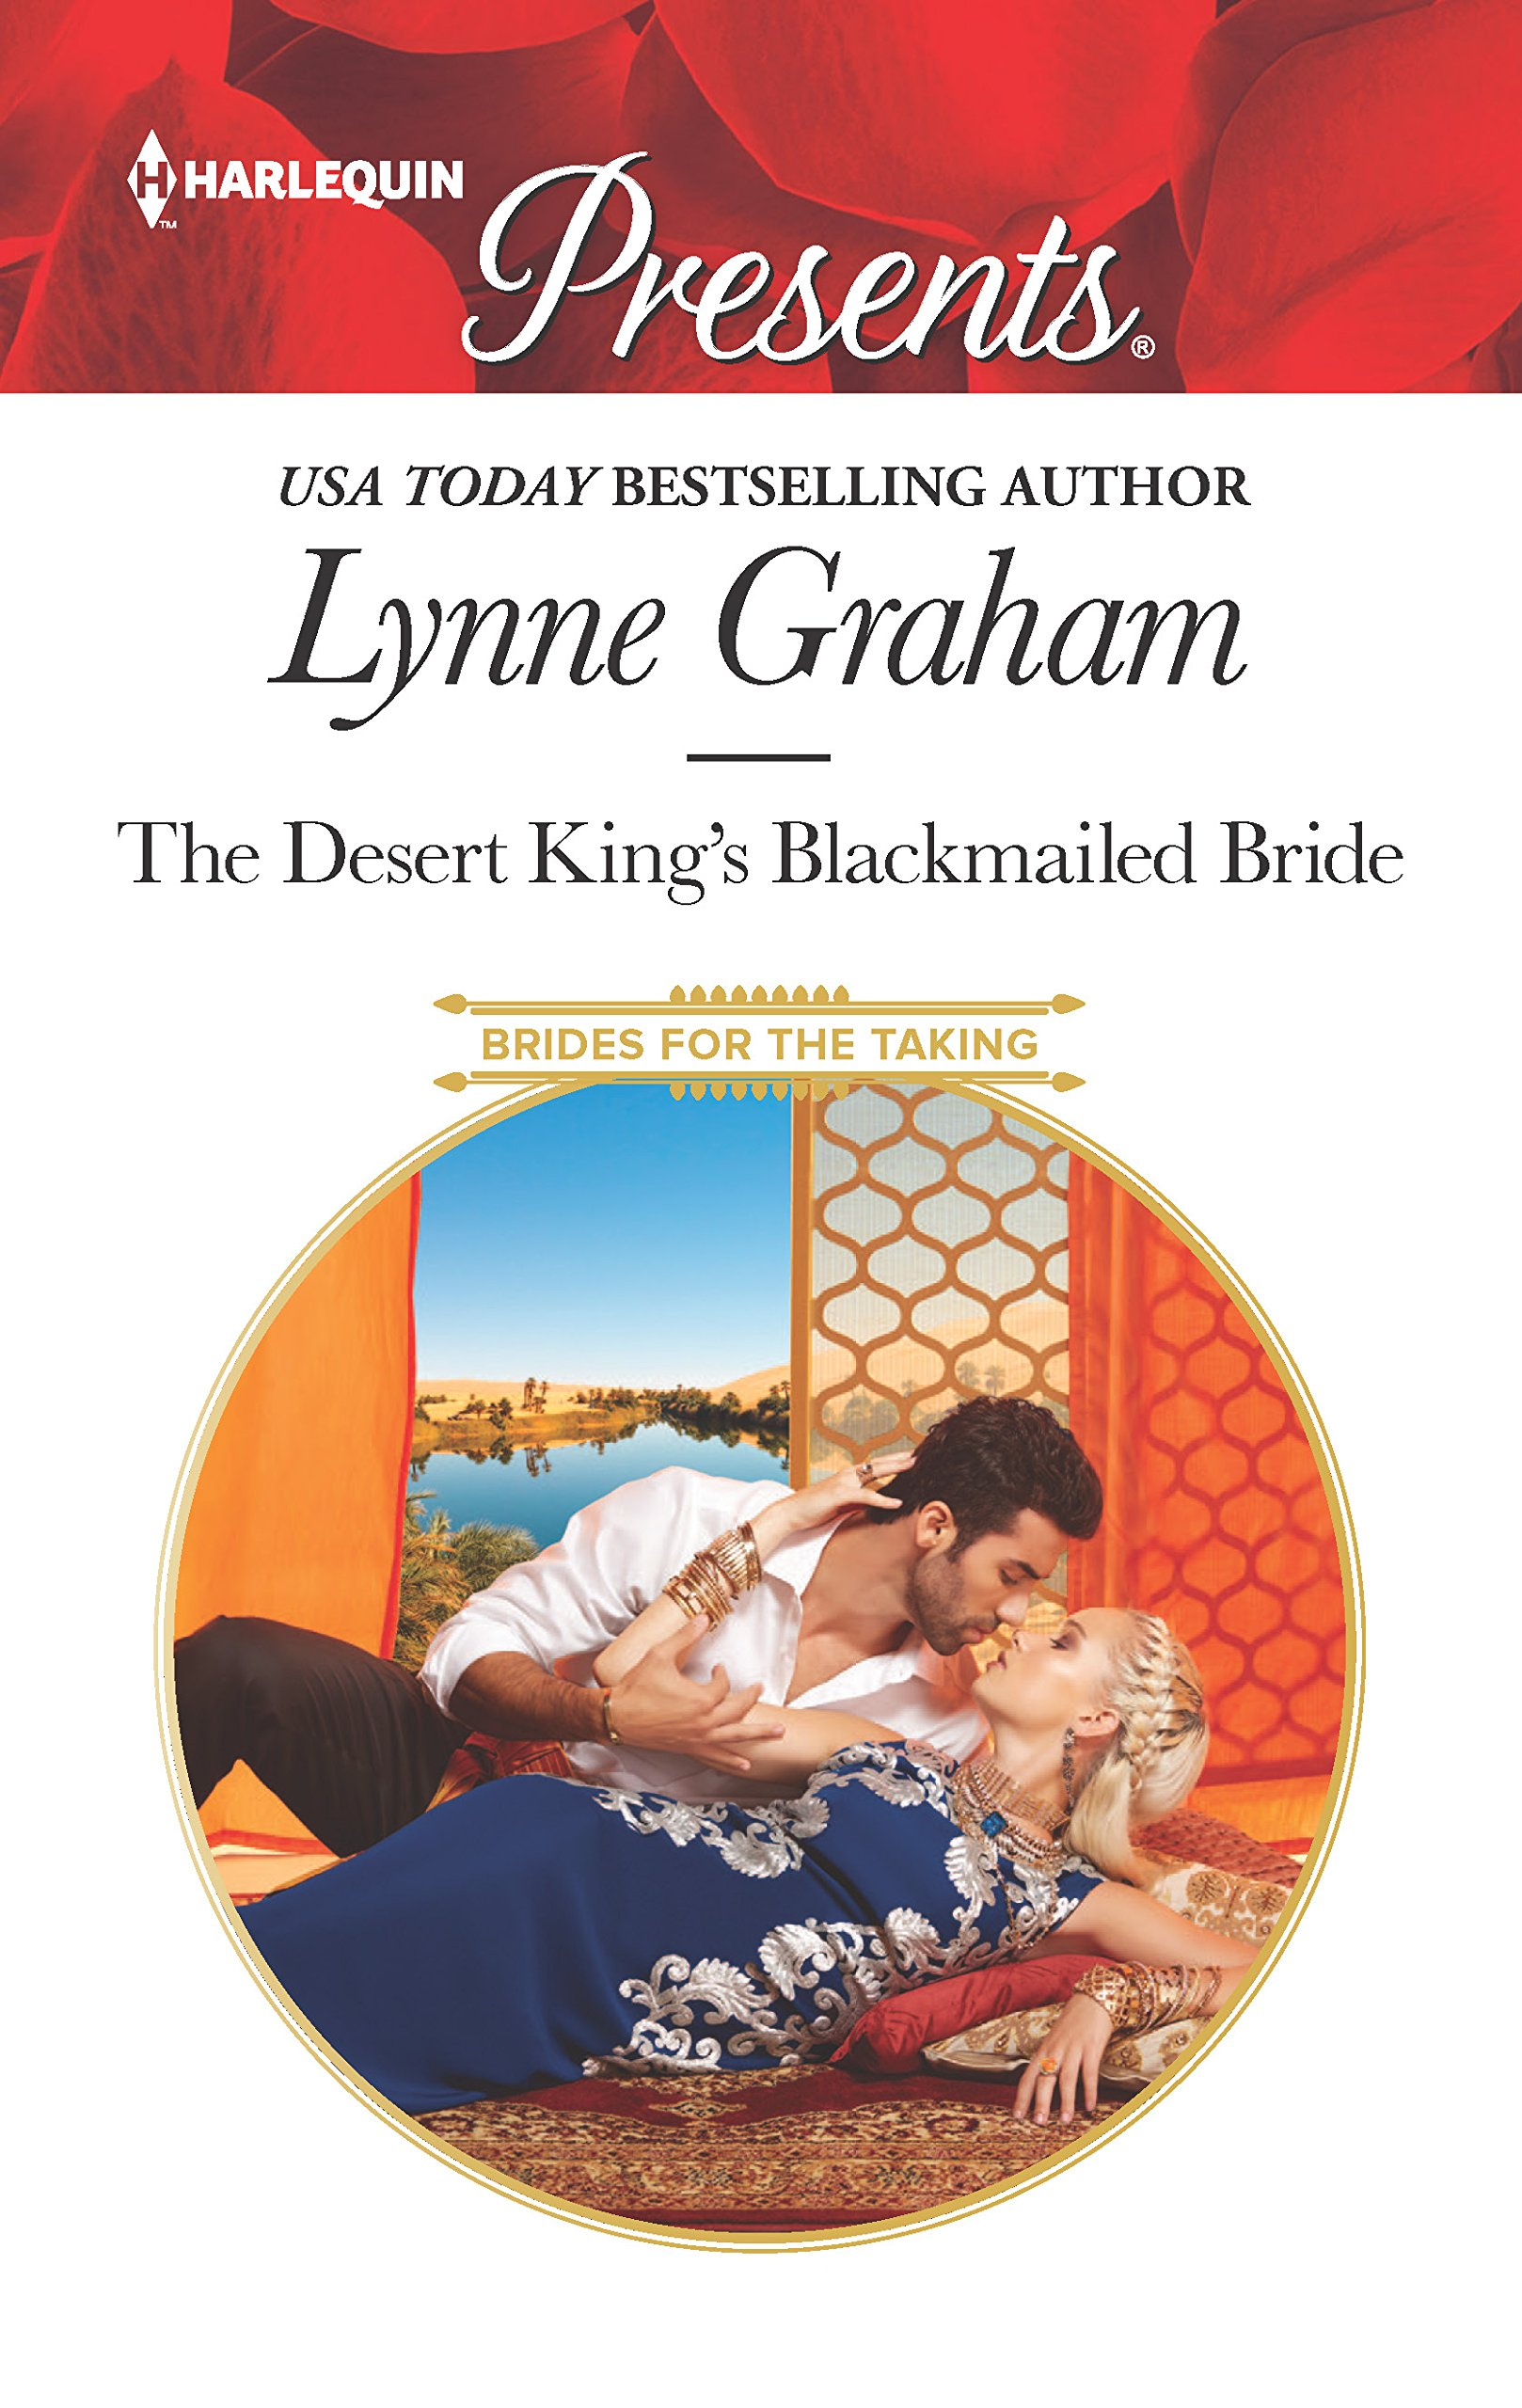 The Desert King's Blackmailed Bride: A scandalous story of passion and  romance (Brides for the Taking): Lynne Graham: 9780373060382: Amazon.com:  Books